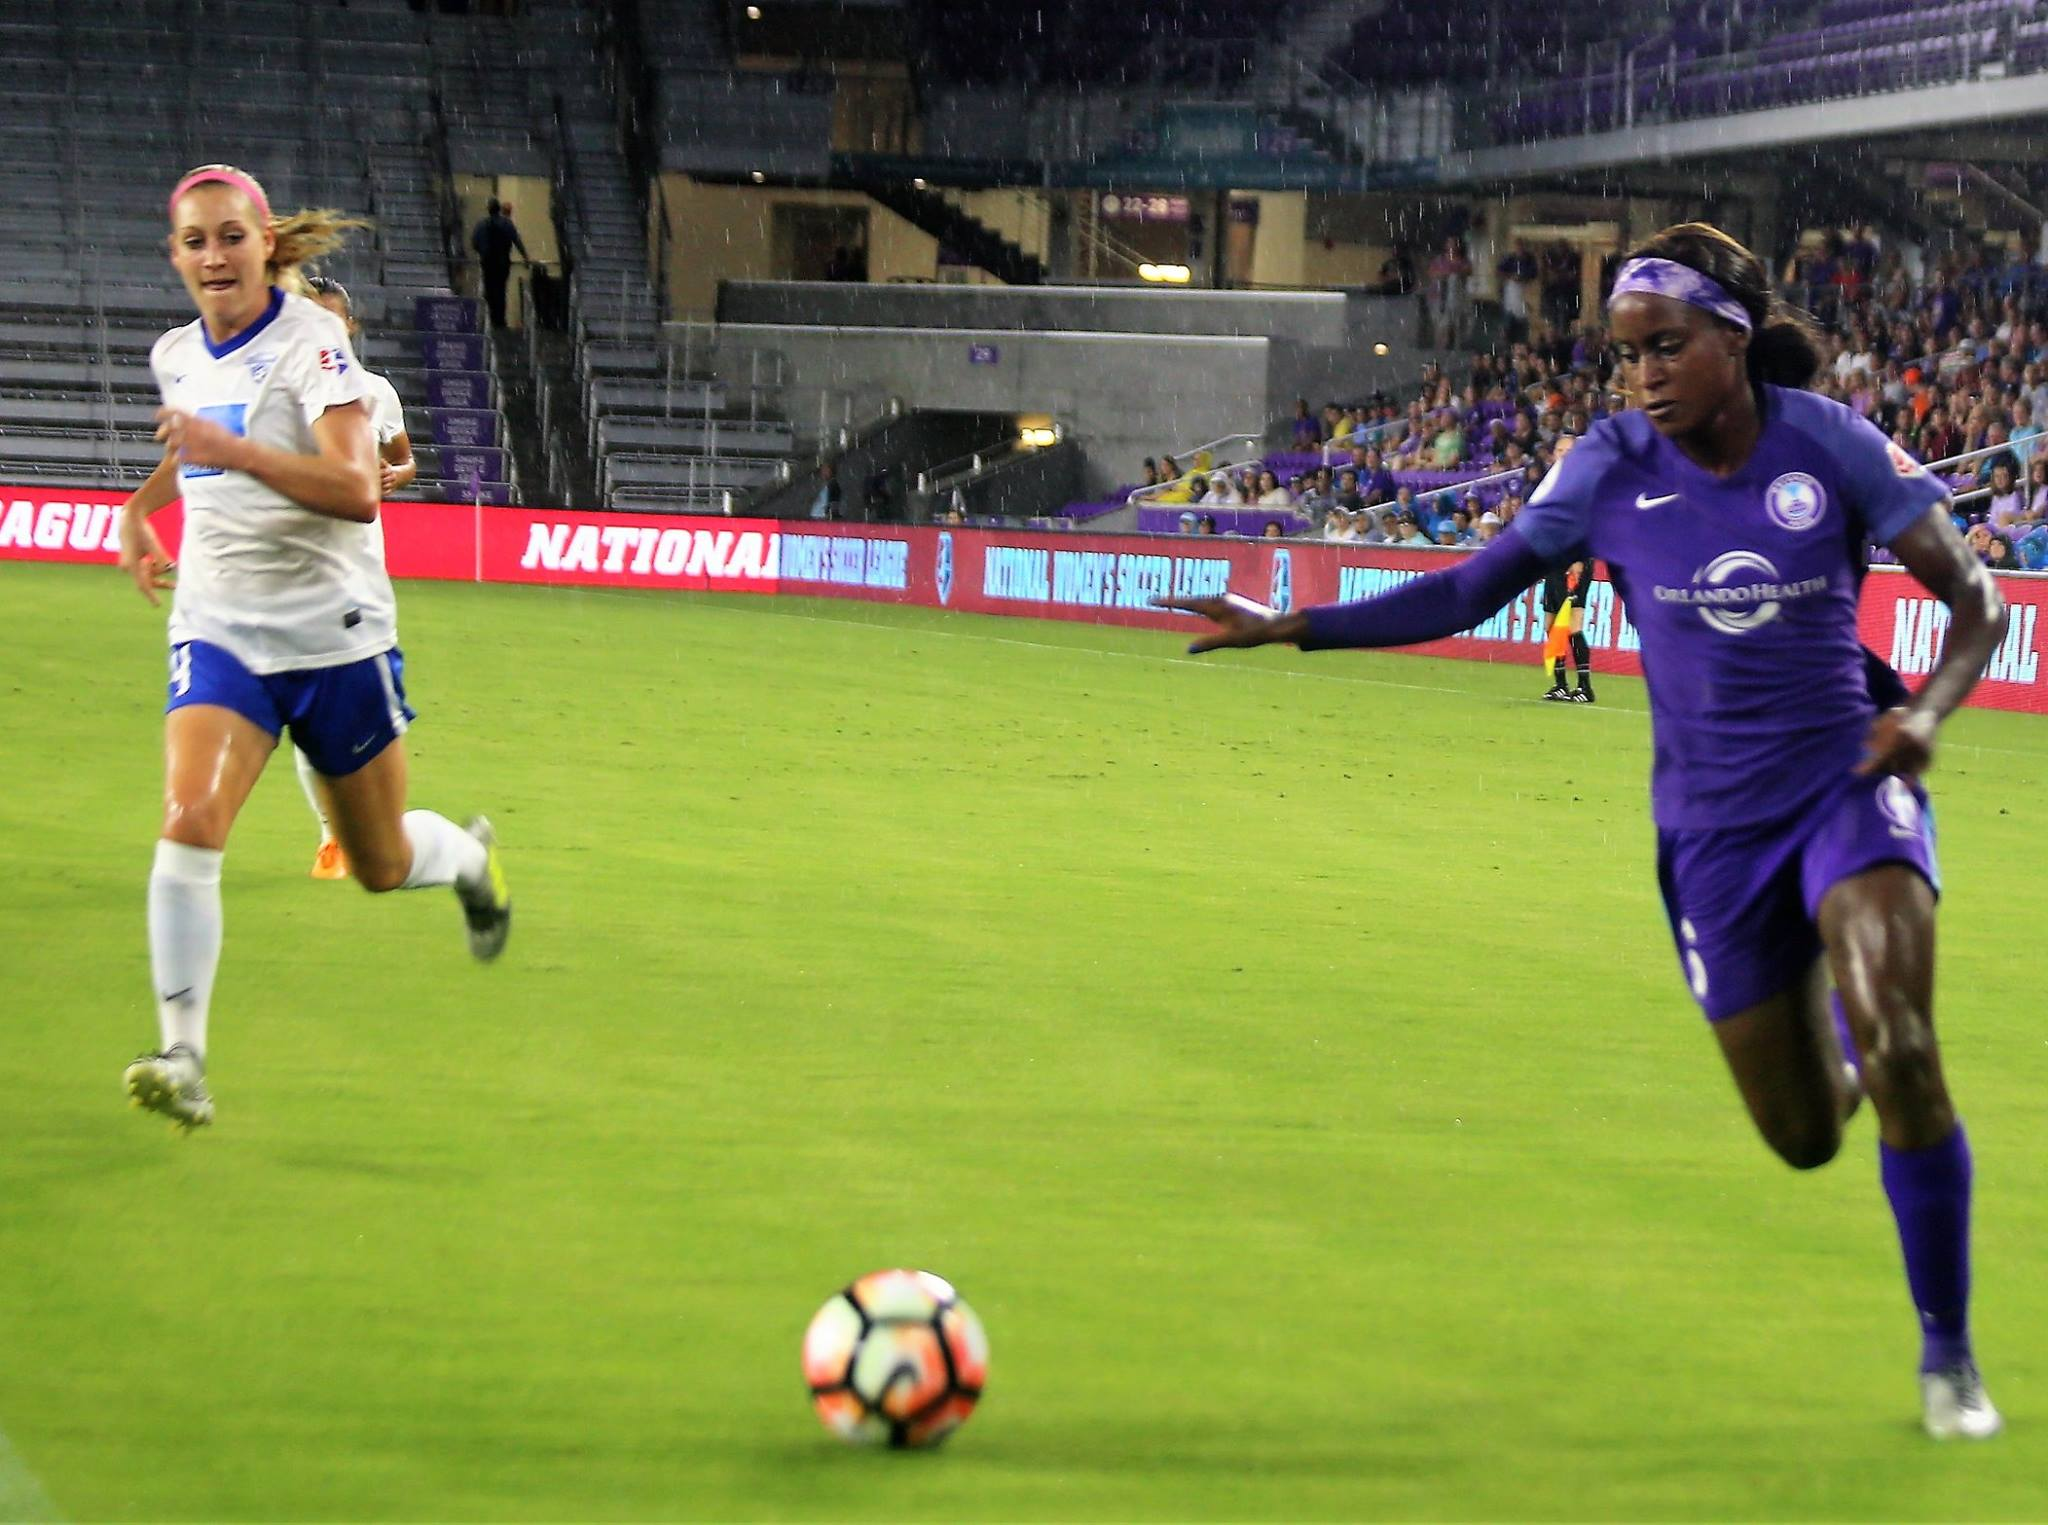 ORLANDO (FNN SPORTS) - The Orlando Pride came out aggressively against the Boston Breakers at Orlando City Stadium Saturday night. Photo: J. Willie David III/Florida National News.